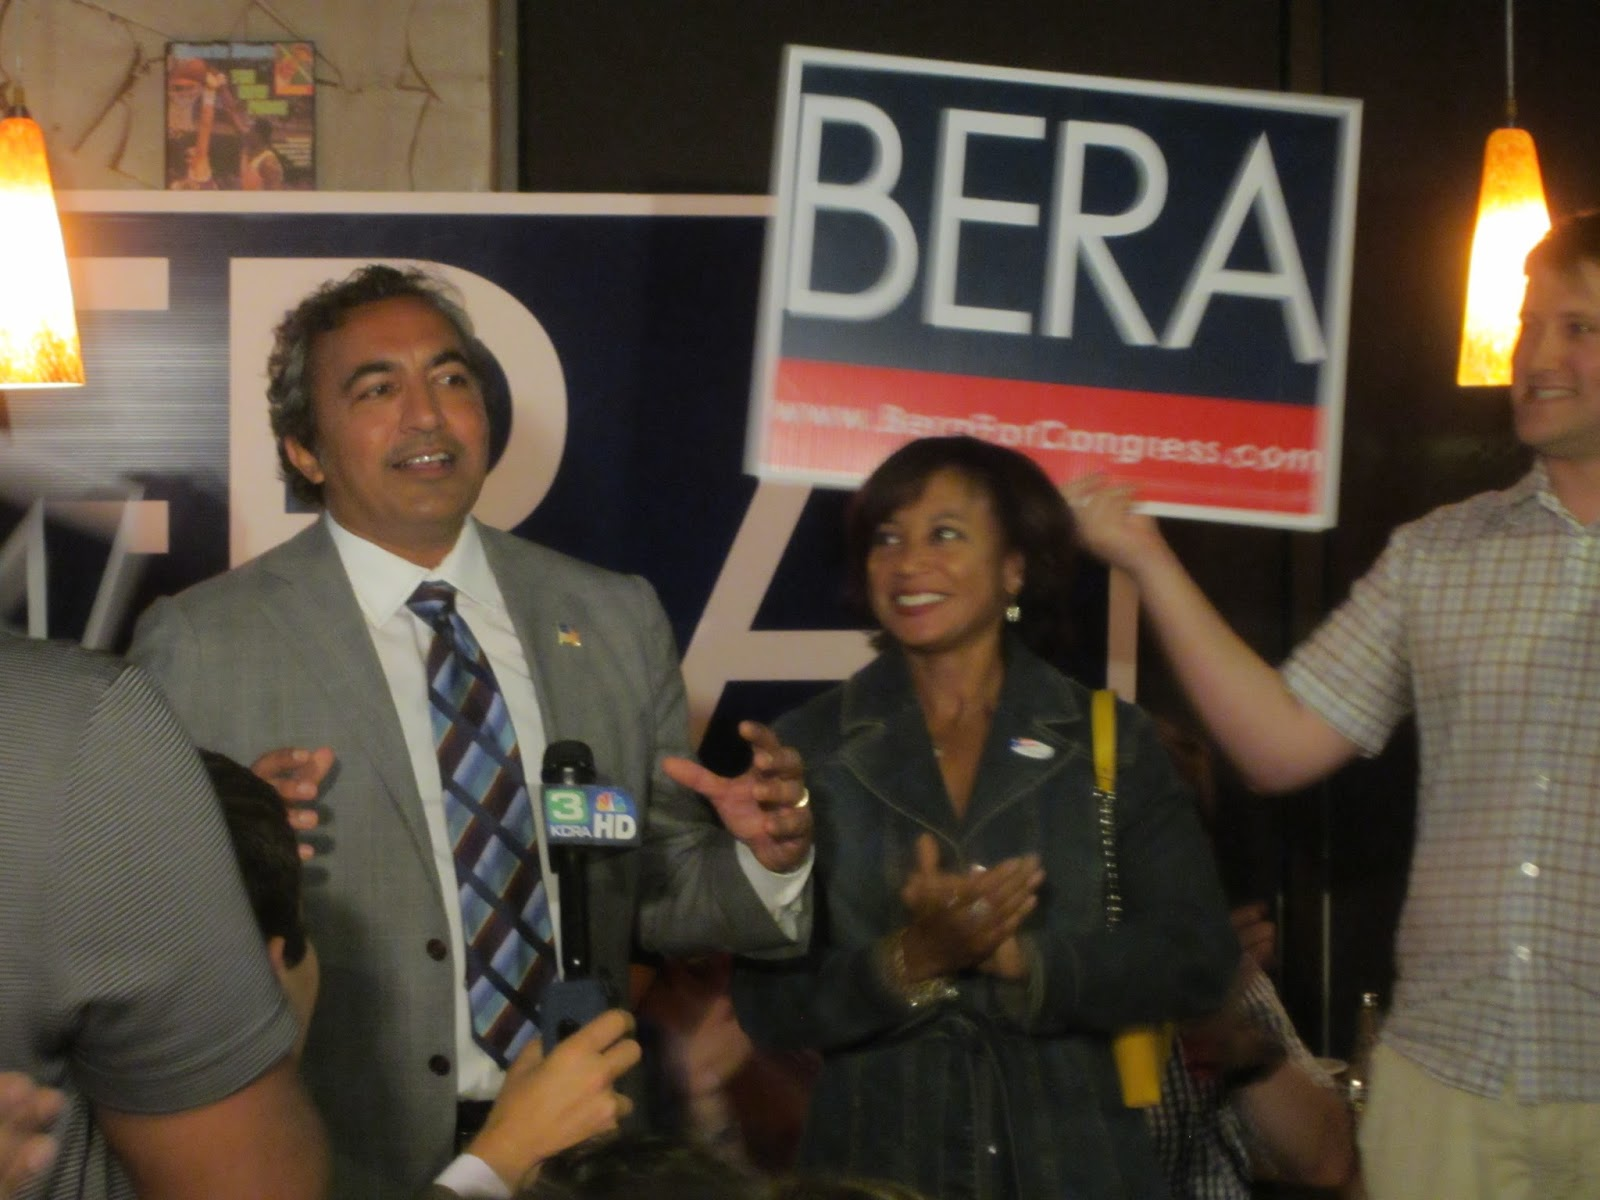 Non-partisan 'No Labels' group reportedly to help get-out-the-vote for Bera